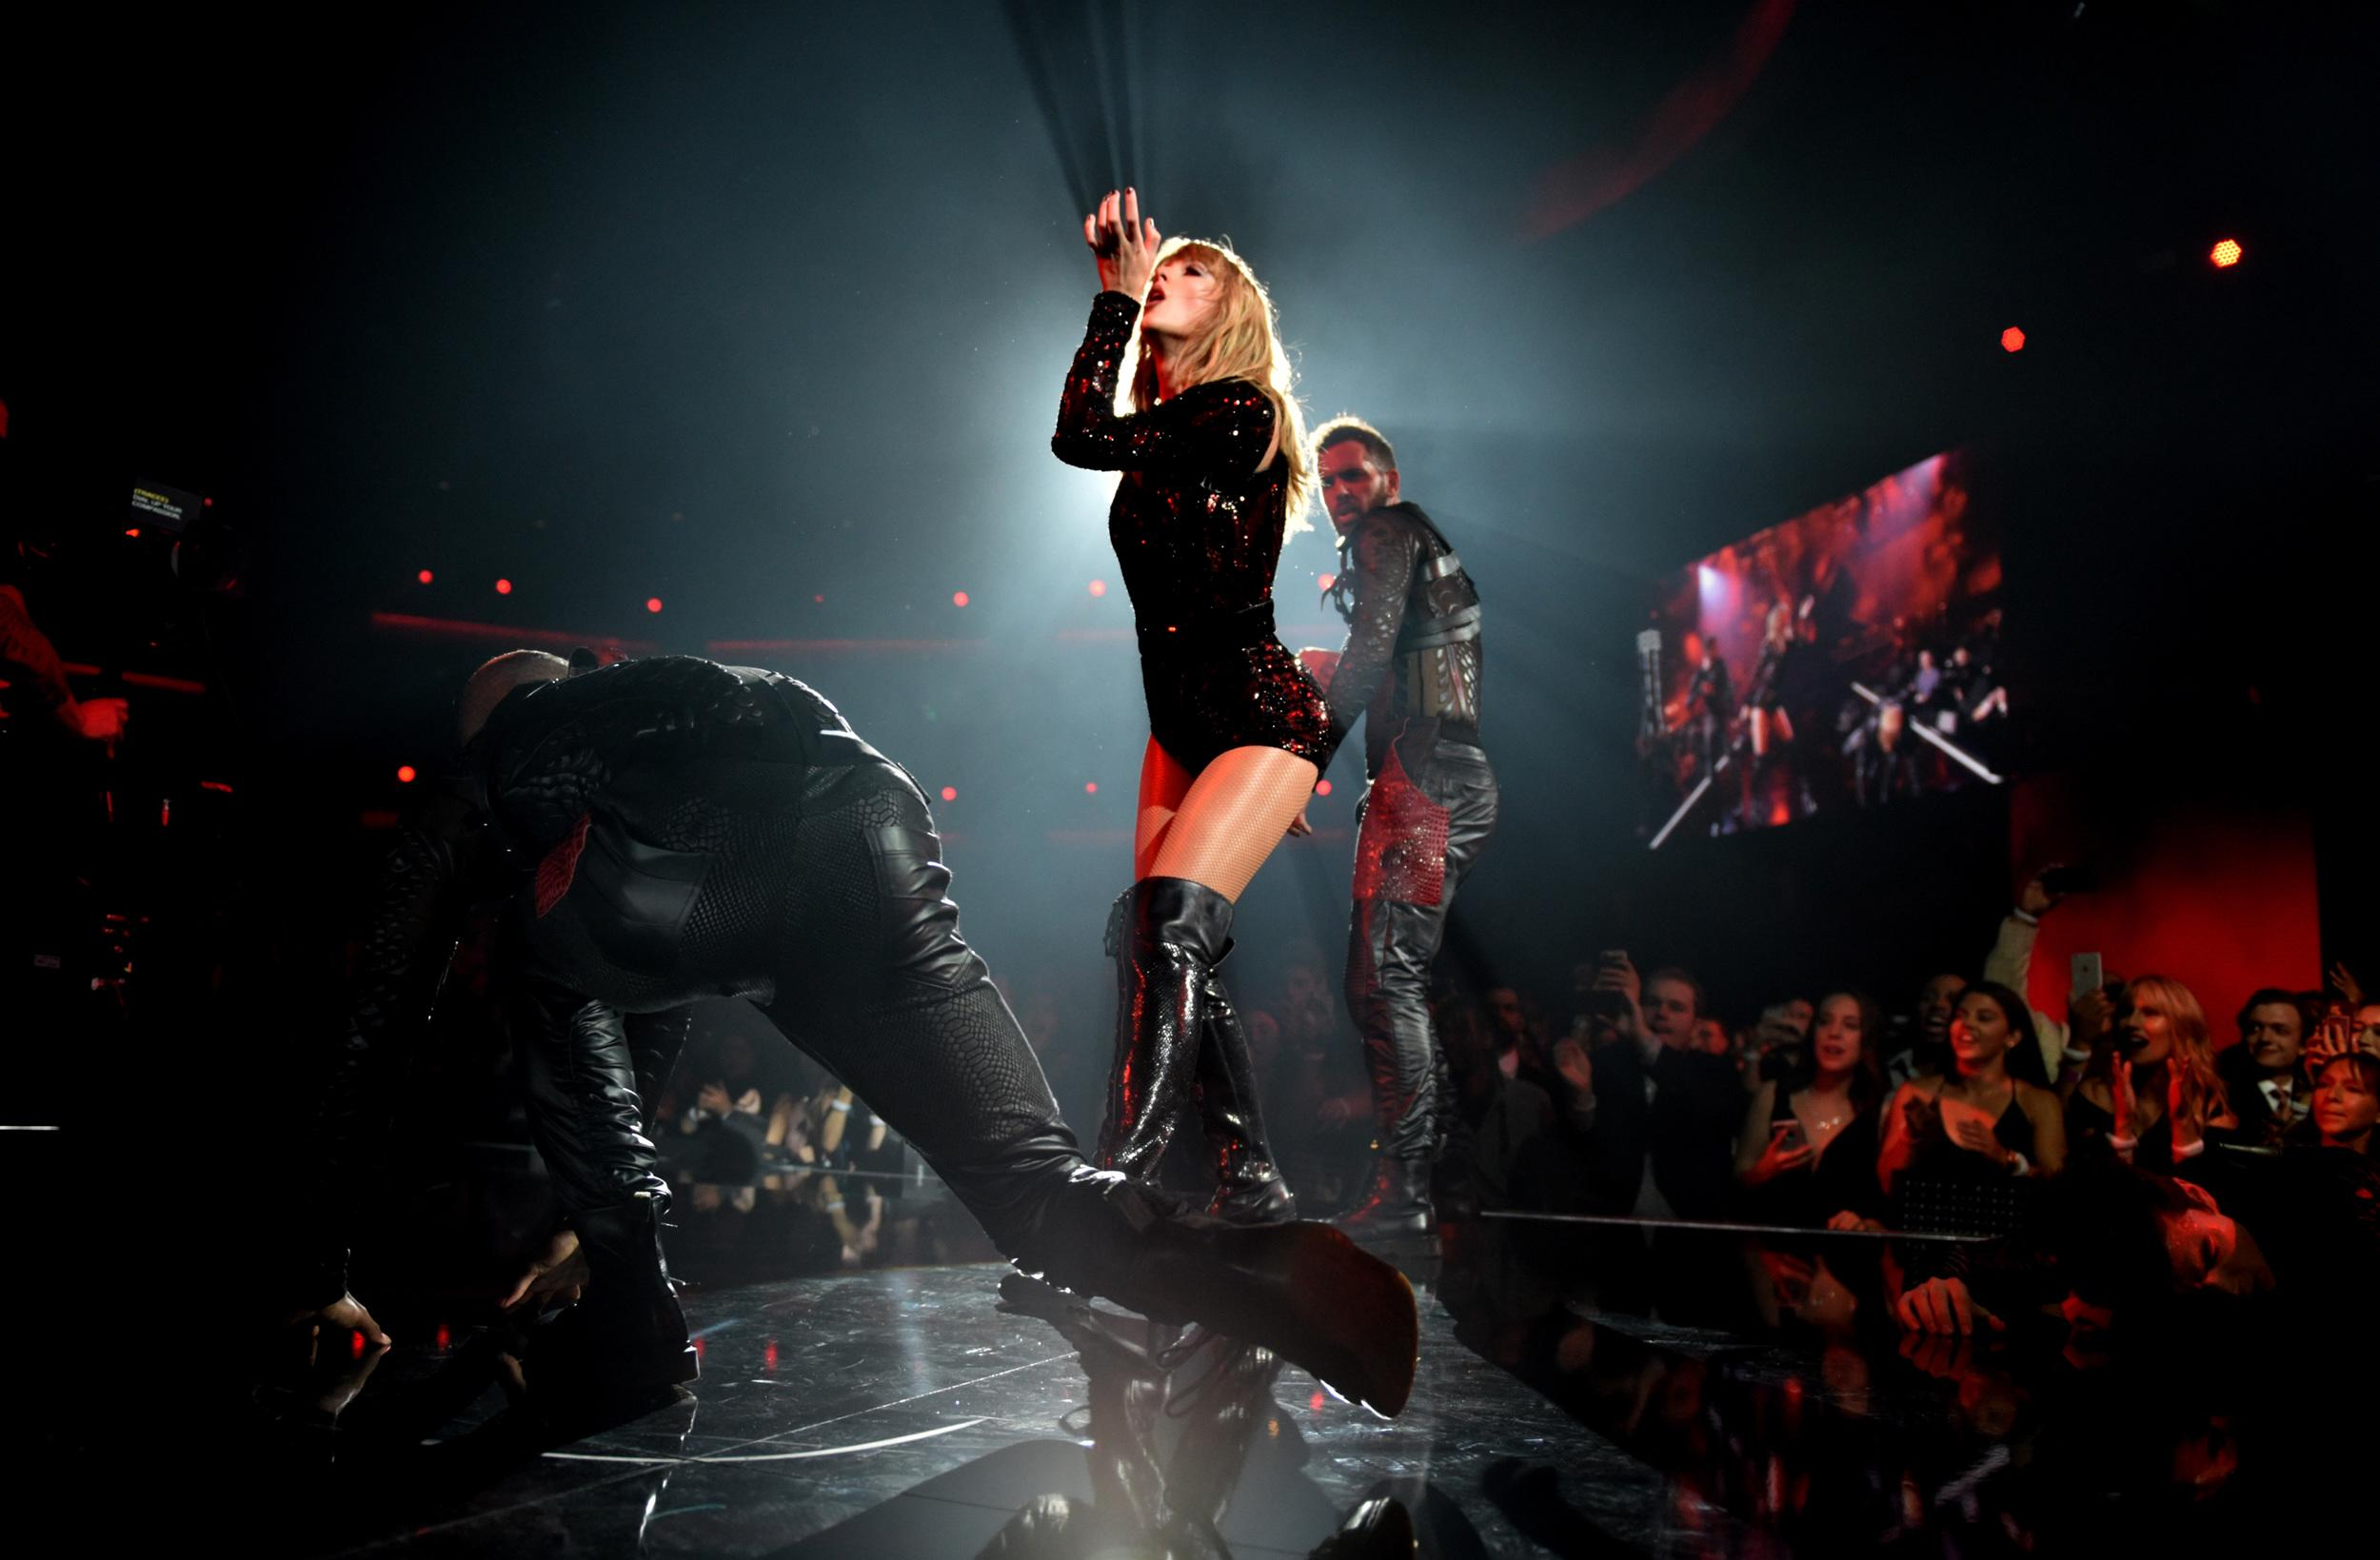 LOS ANGELES, CA - OCTOBER 09:  Taylor Swift performs onstage during the 2018 American Music Awards at Microsoft Theater on October 9, 2018 in Los Angeles, California.  (Photo by John Shearer/AMA2018/Getty Images For dcp)